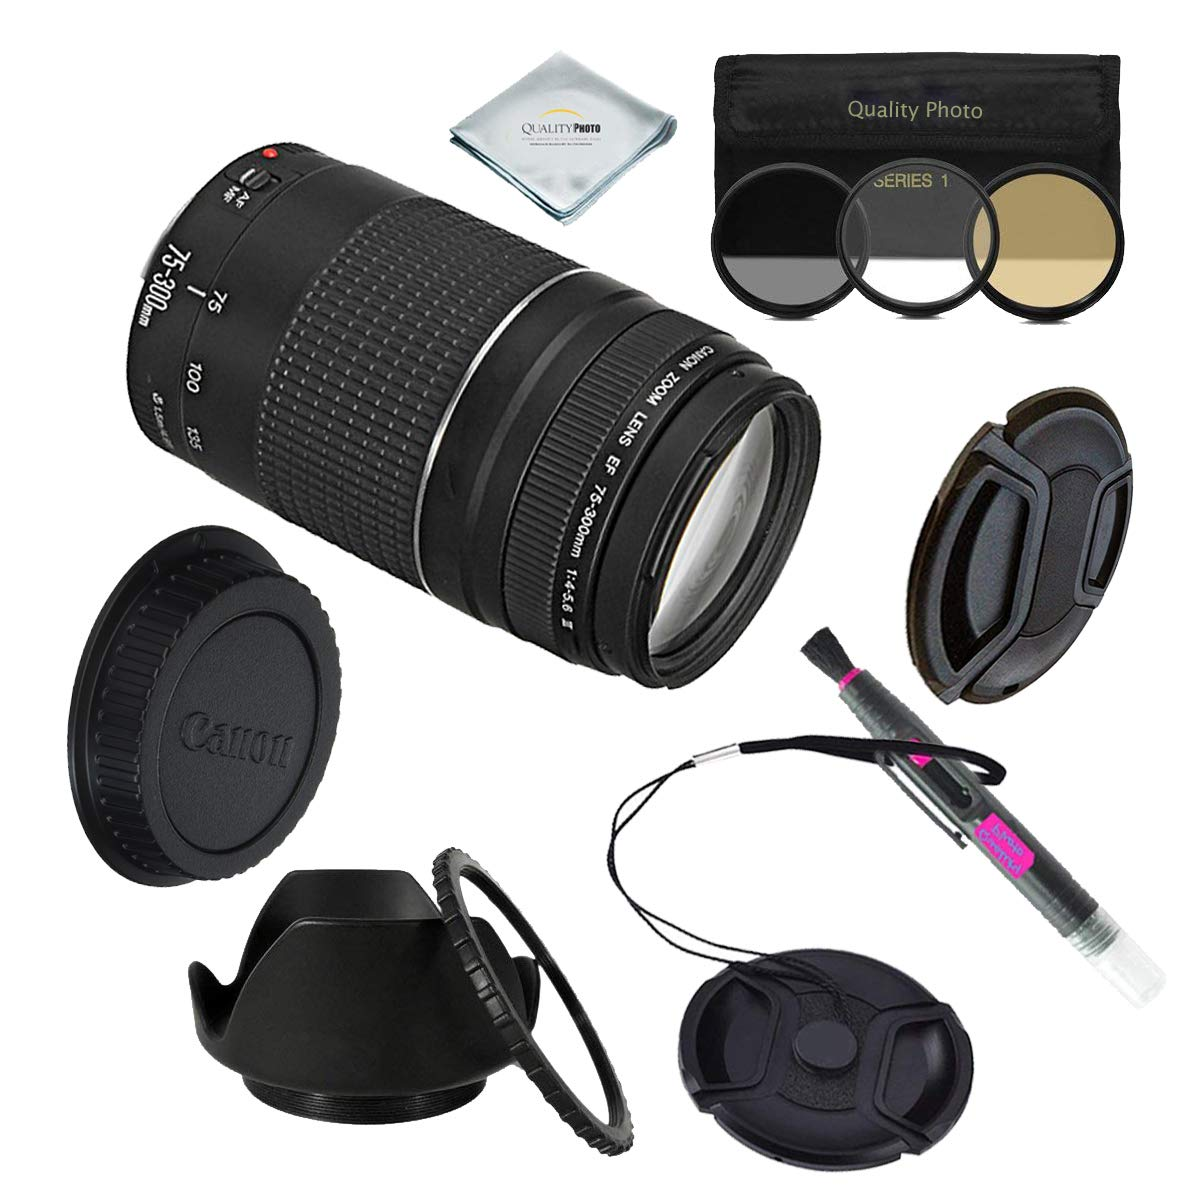 Canon EF 75 – 300 mm f / 4 – 5.6 III望遠ズームレンズfor Canon SLR Cameras + Extra Accessories B01K2MS8Q8